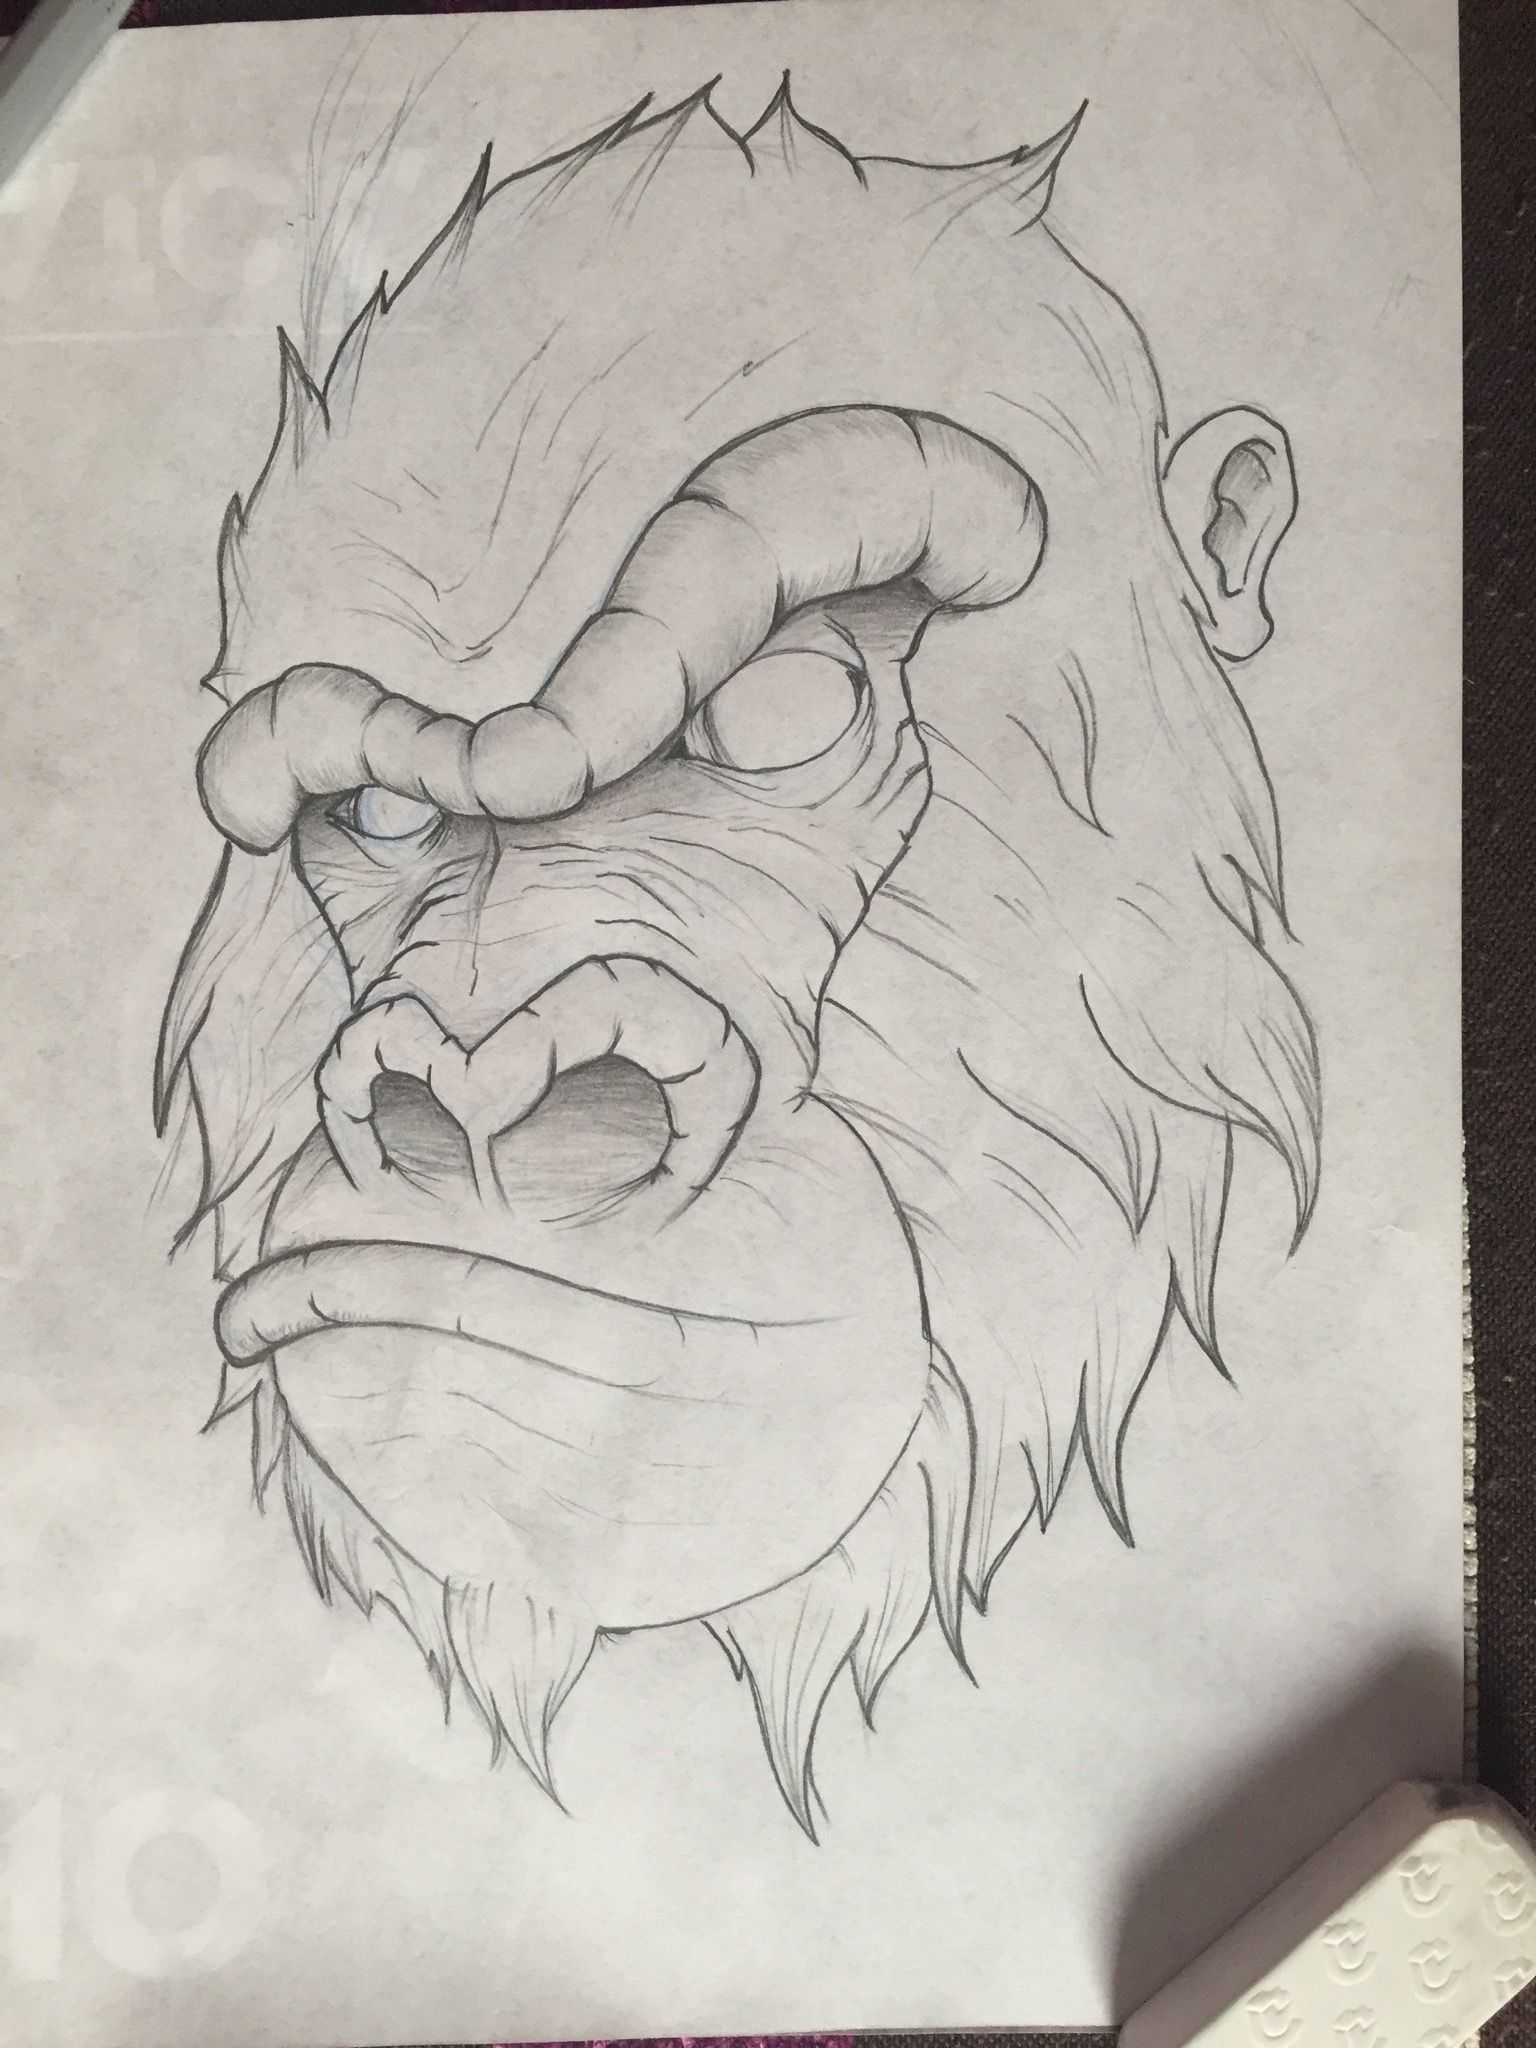 Cool Quick Drawings : quick, drawings, Josezinferno, Gorilla!!!, Quick, Sketch!!, Enjoy, #josezinferno, #gorilla, #sketch, Animal, Drawings, Sketches,, Drawing, Sketches